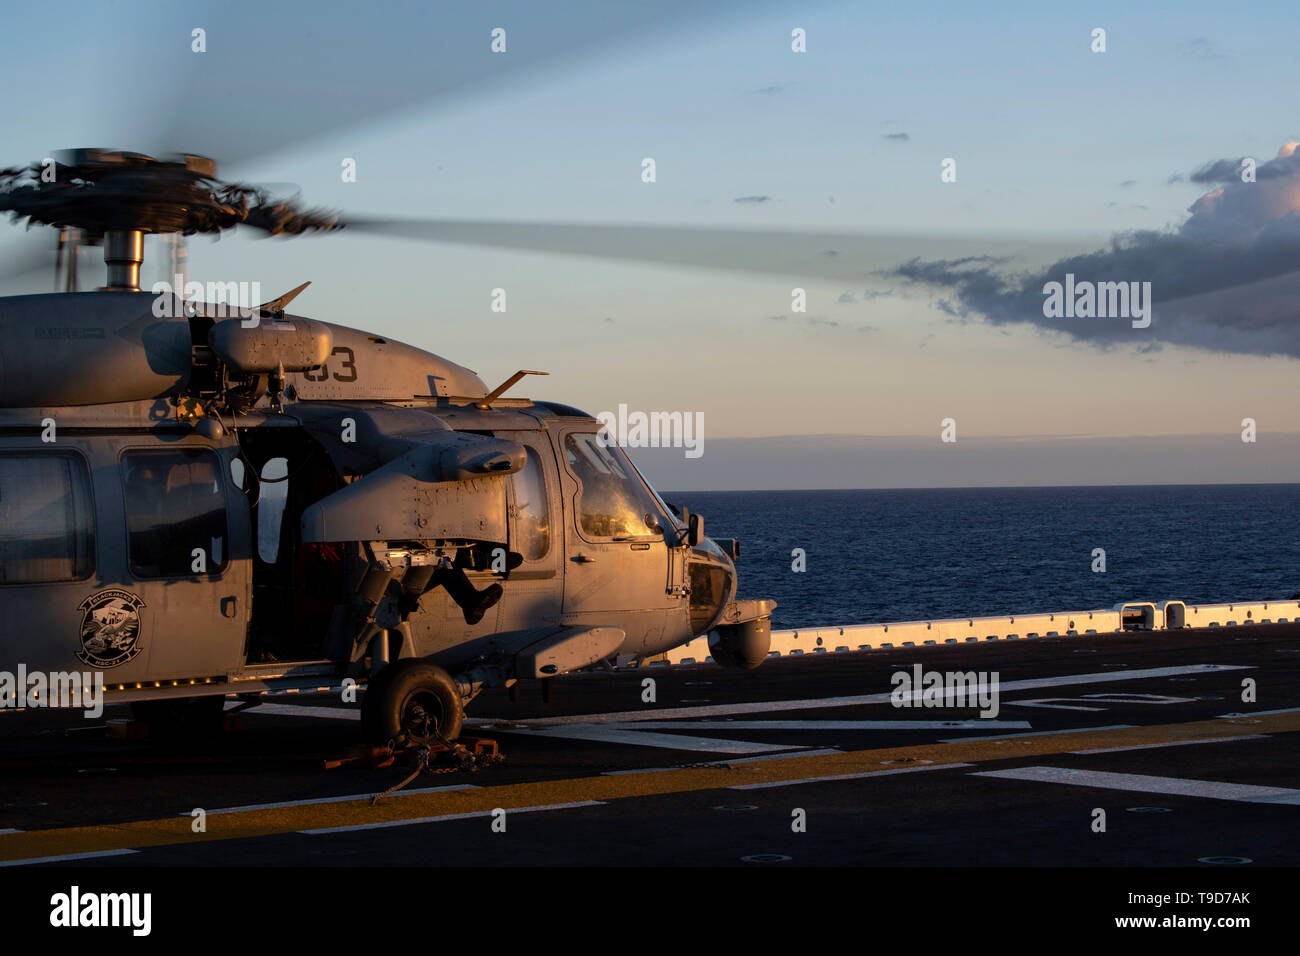 190516-N-IQ884-2088  PEARL HARBOR (May 16, 2019) An MH-60S Sea Hawk assigned to Helicopter Sea Combat Squadron (HSC) 21 operates its rotors during ground turns operations on the flight deck of amphibious assault ship USS Boxer (LHD 4). Sailors and Marines of the Boxer Amphibious Ready Group (ARG) and 11th Marine Expeditionary Unit (MEU) are embarked on USS Boxer (LHD 4) on a regularly-scheduled deployment. (U.S. Navy photo by Mass Communication Specialist 2nd Class Dale M. Hopkins) - Stock Image